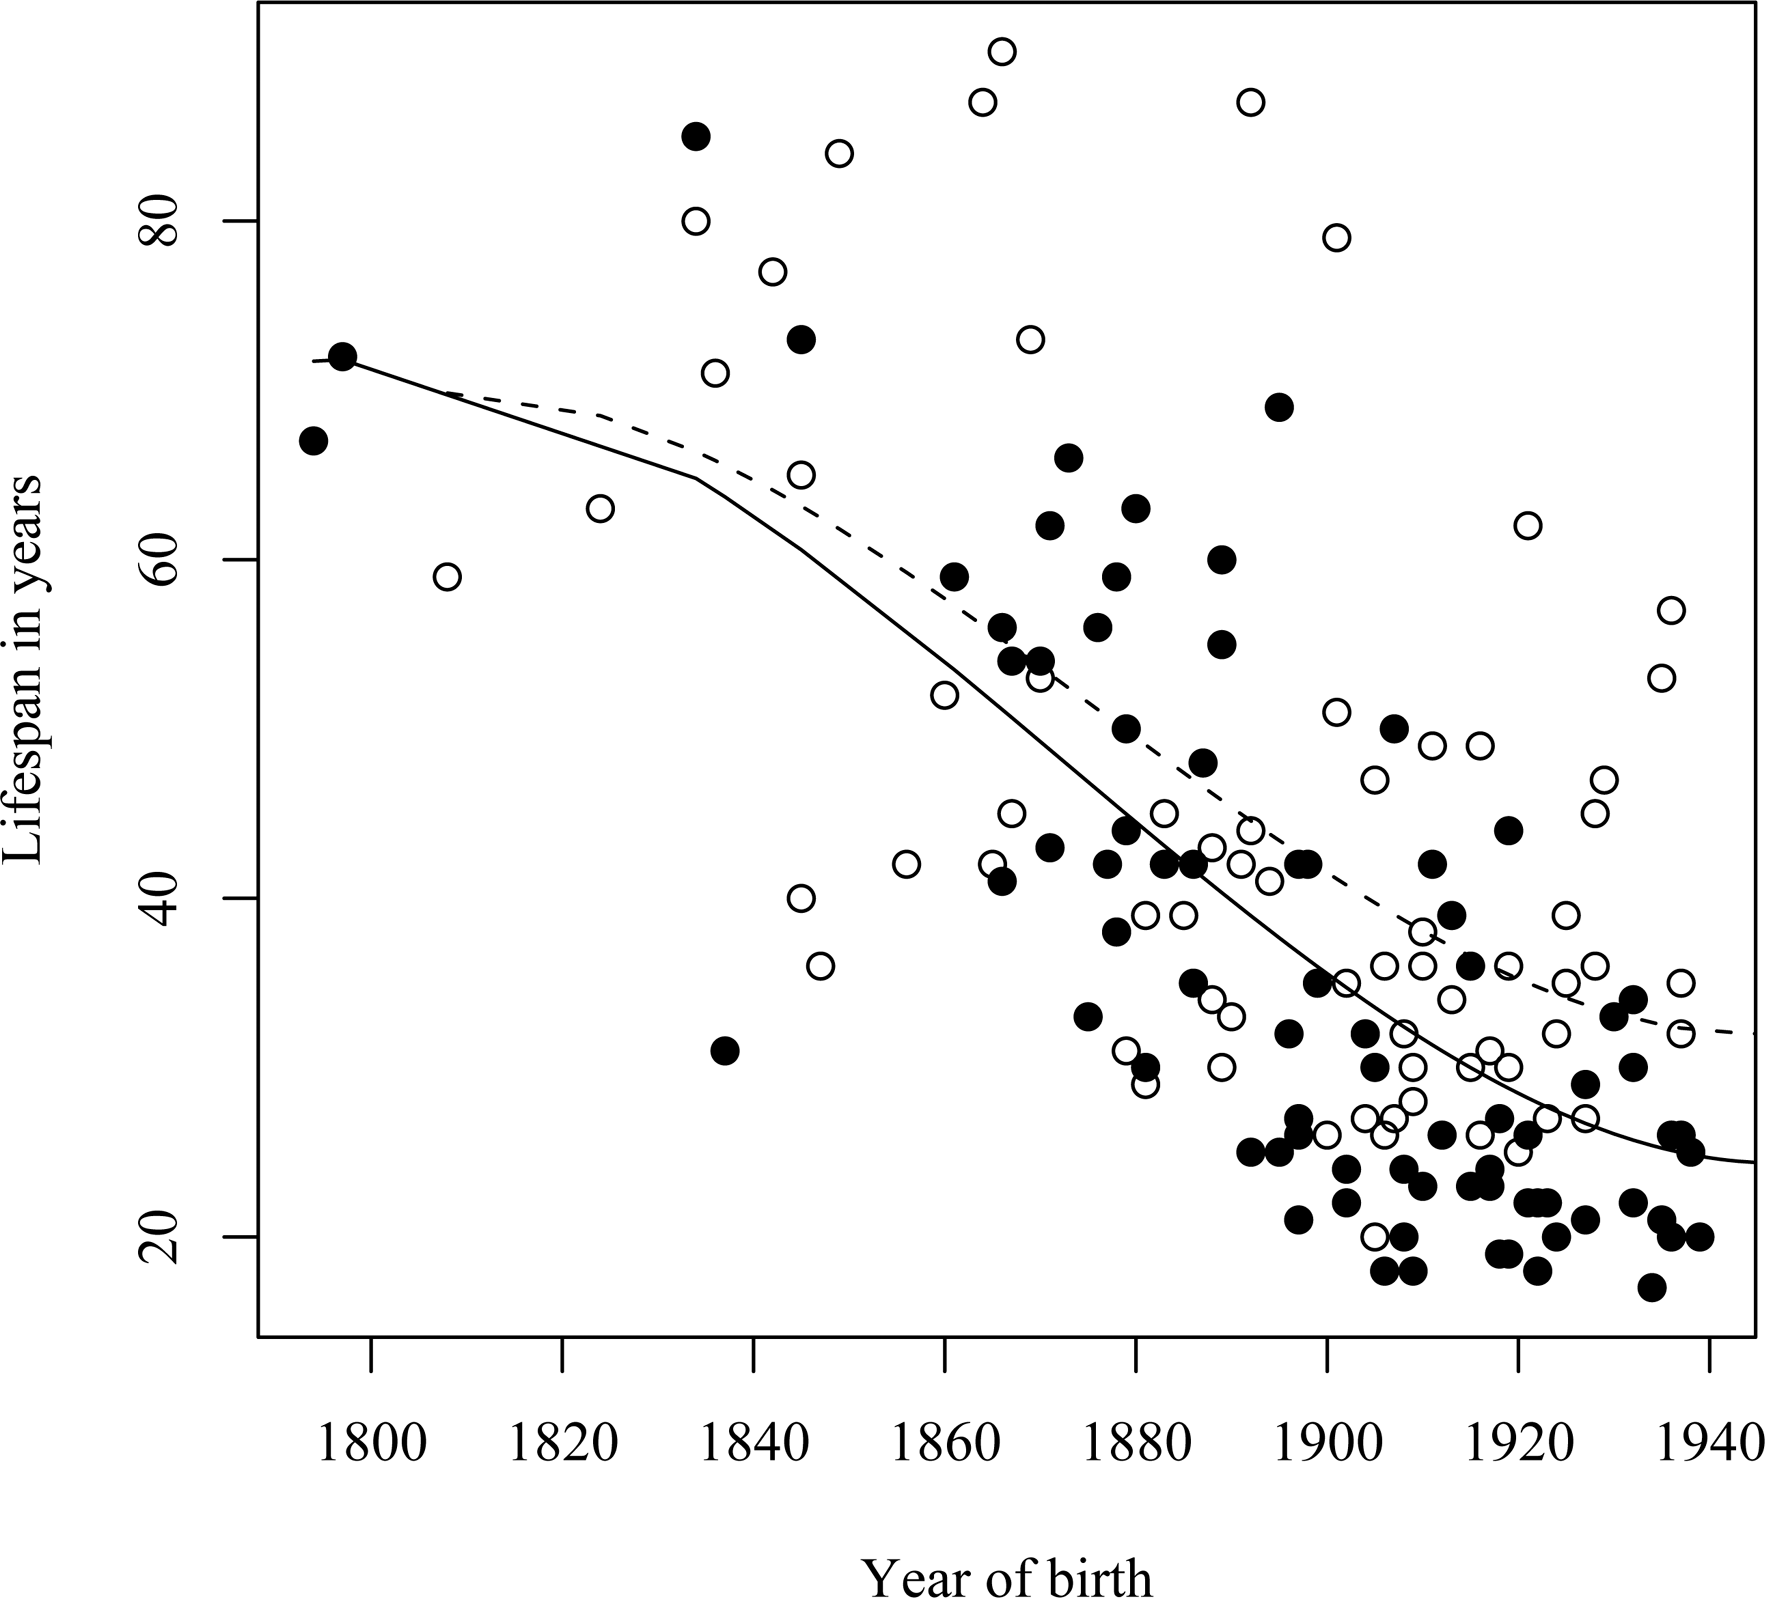 Relationship between the life span of L68Q mutation carriers and their year of birth from the year 1800 to 1940.